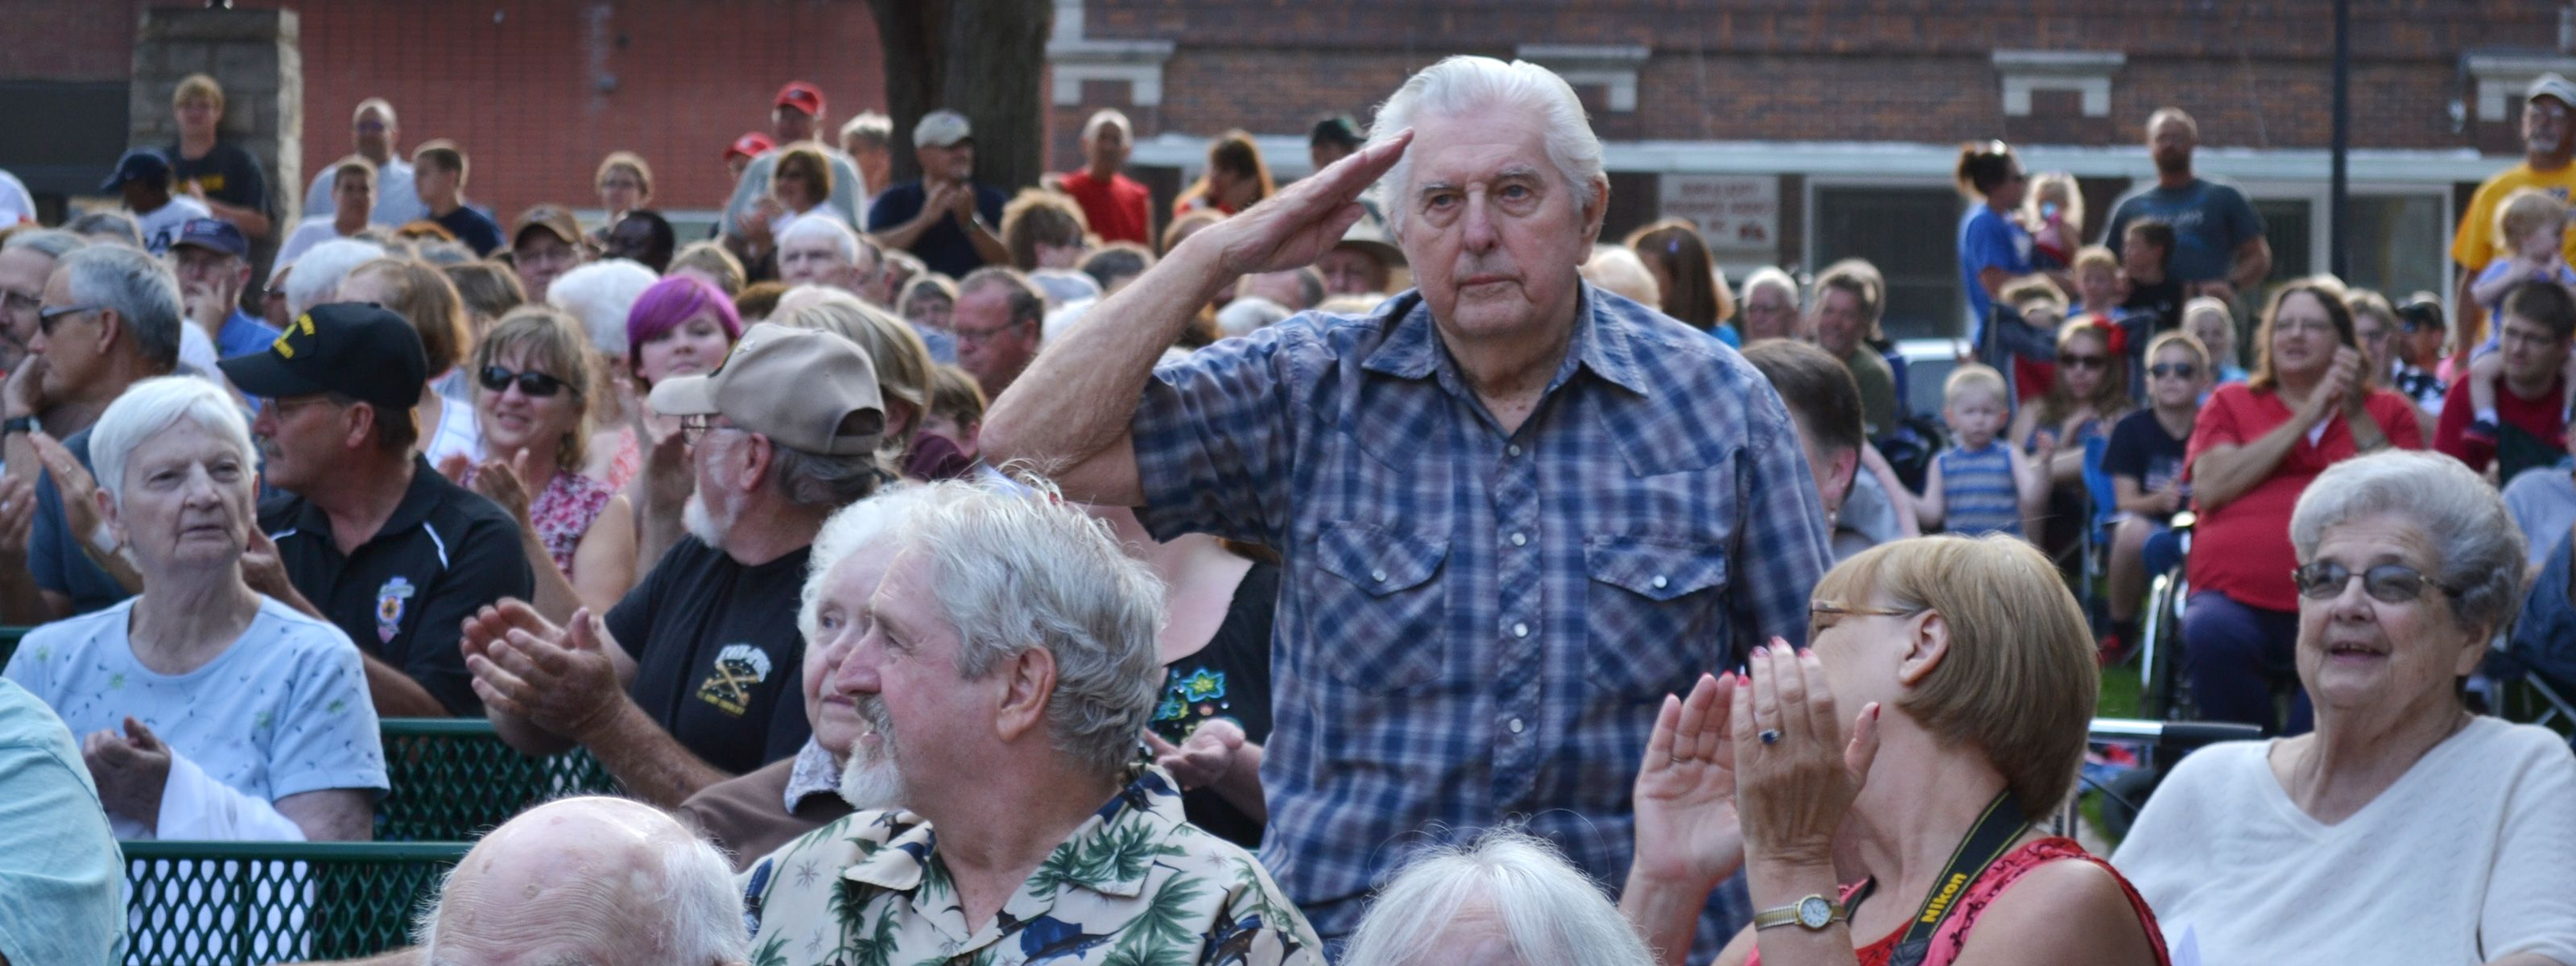 Man saluting in the crowd at the Bandshell in Seward, Nebraska on July 4th